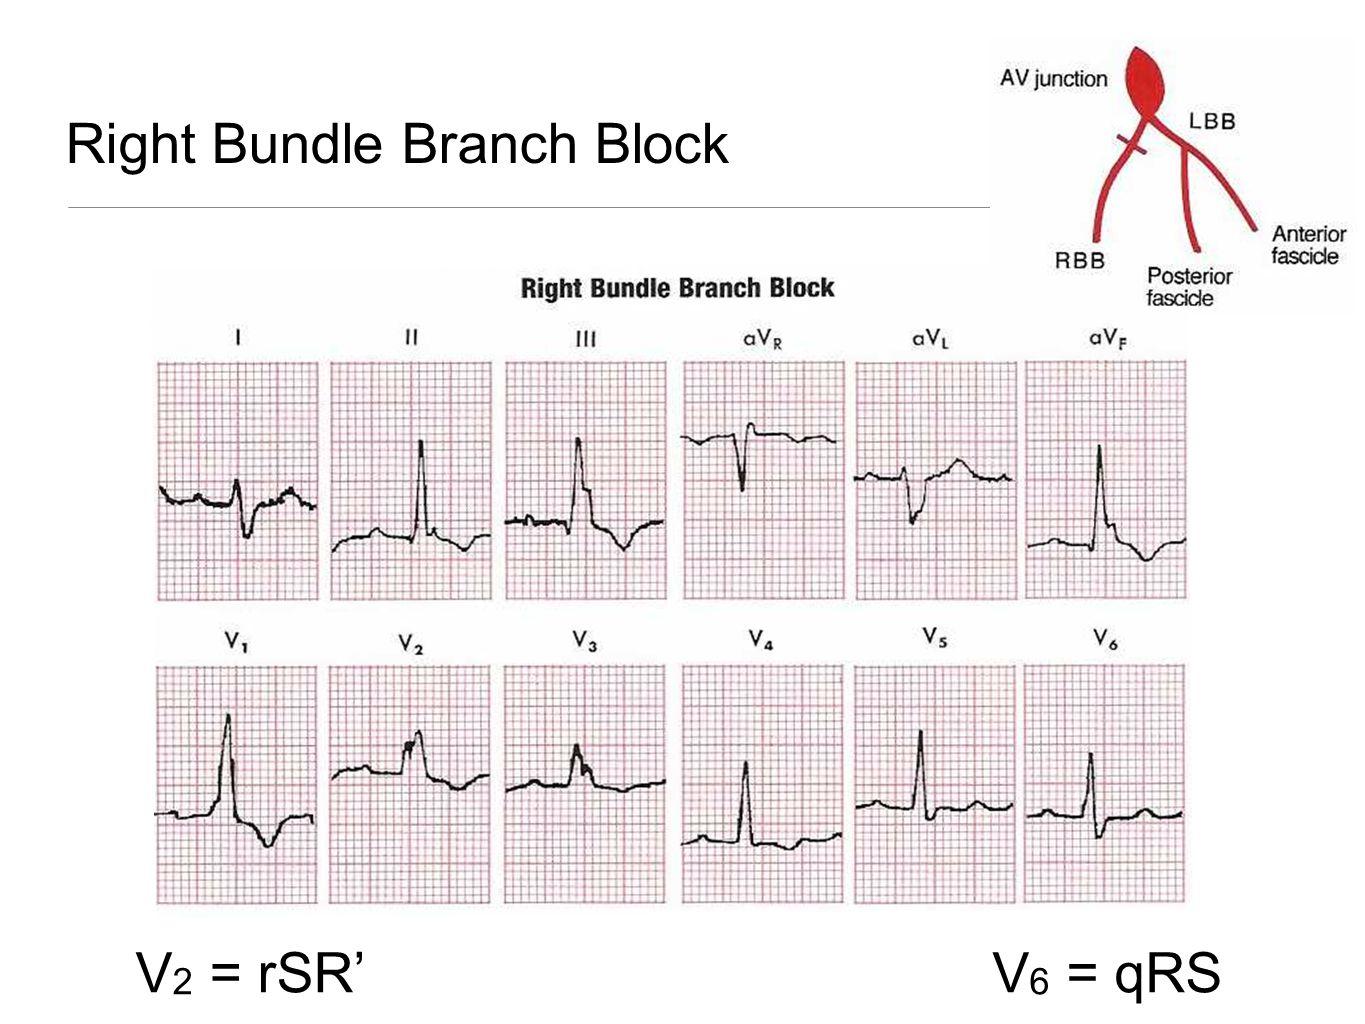 Hypertrophy In The Presence of Bundle Branch Block RVH and RBBB RAD is typically seen; also look for RAE and its peaked P waves.